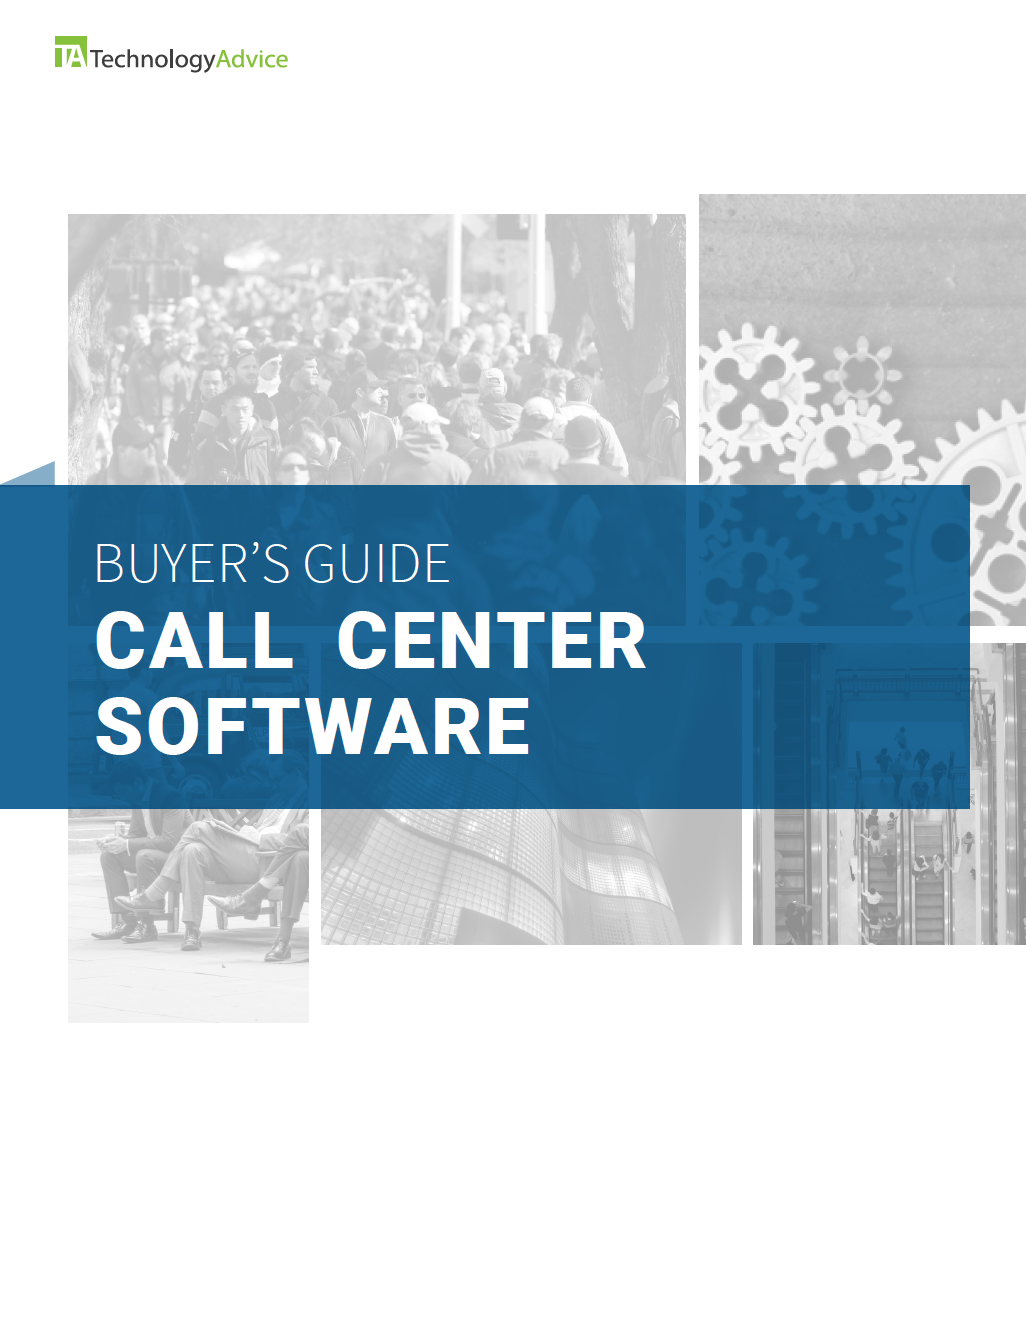 Buyer's Guide to Call Center Software